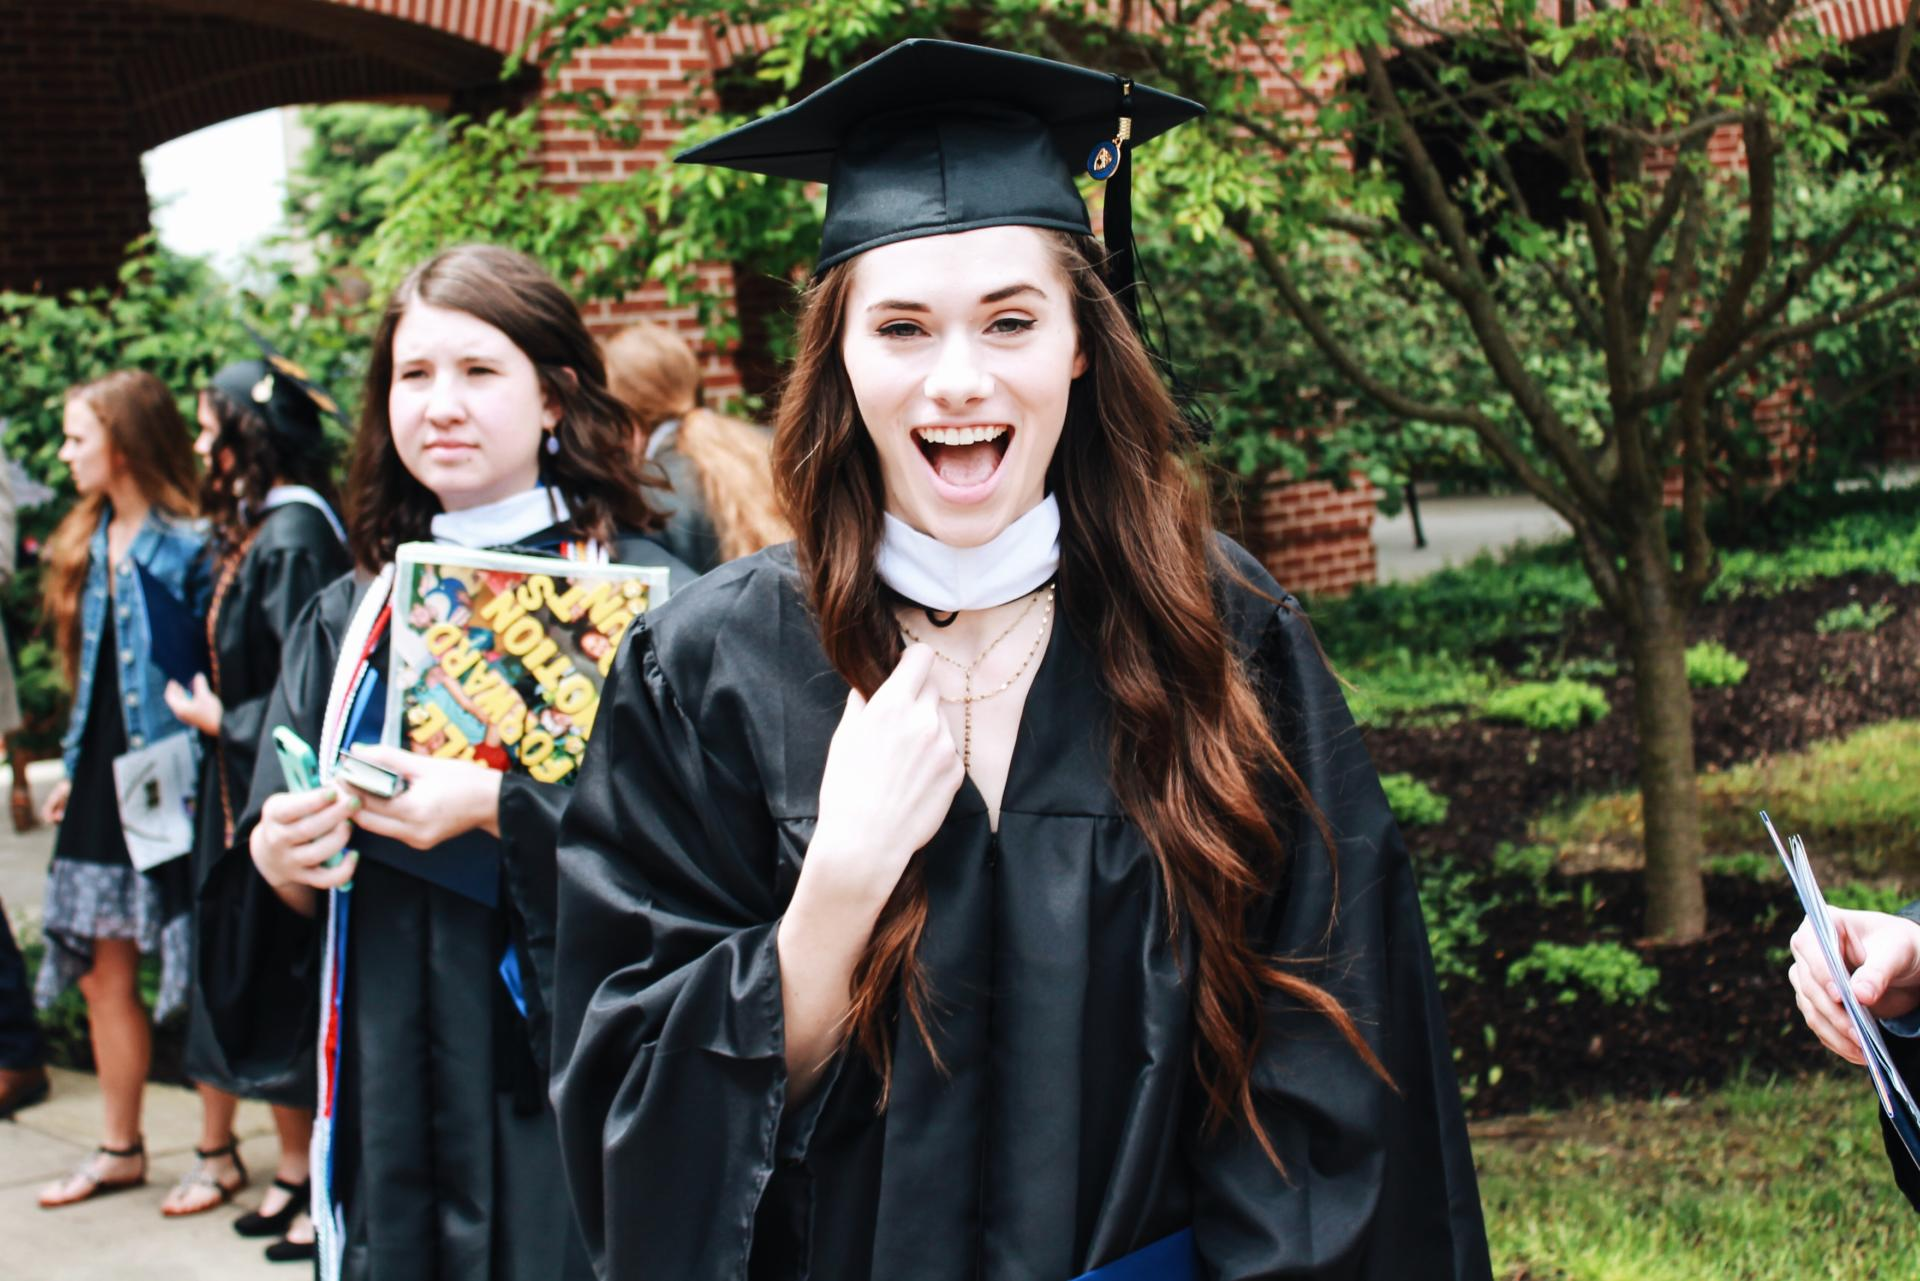 abby saylor i graduated college a reflection on the best 4 after four years of lugging around heavy books spending countless hours in the journalism building and trying to balance college life work life and a